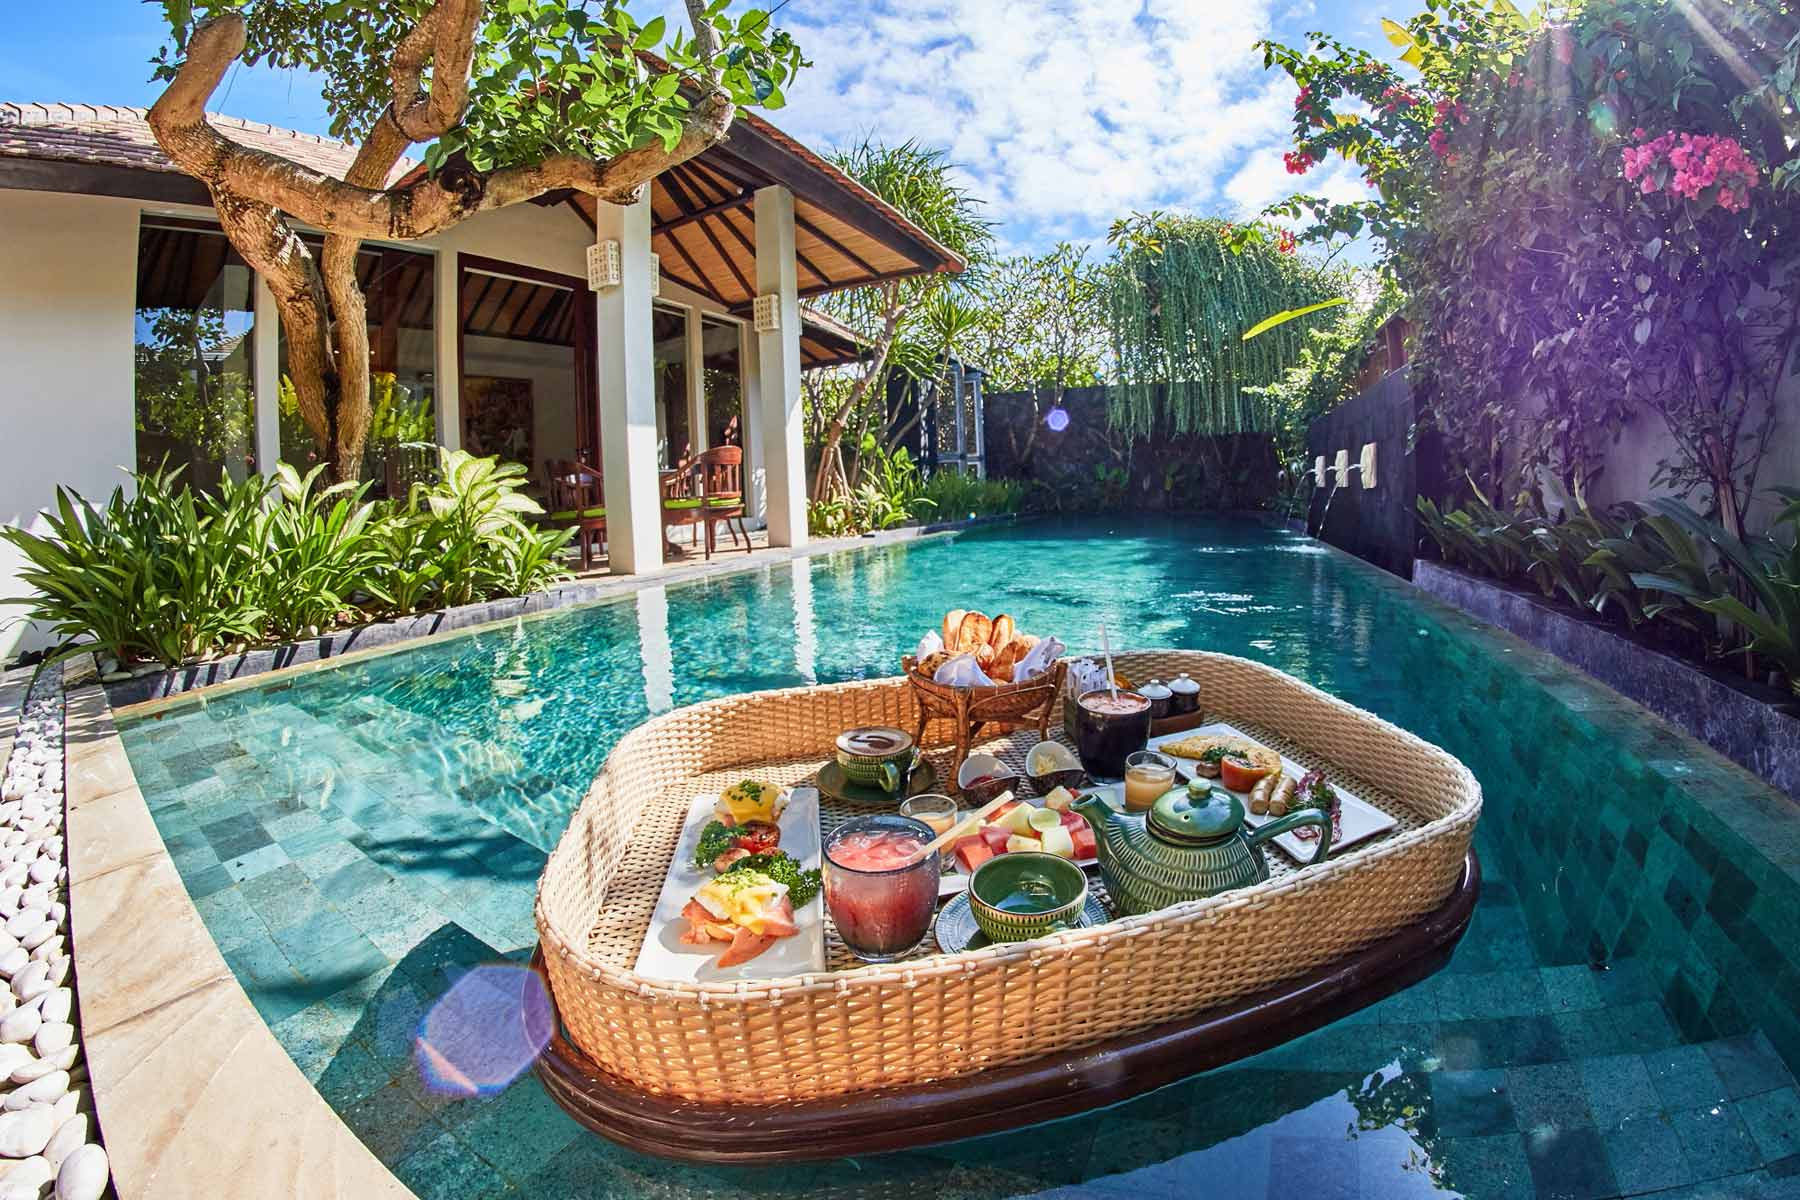 Cabina Floating Breakfast